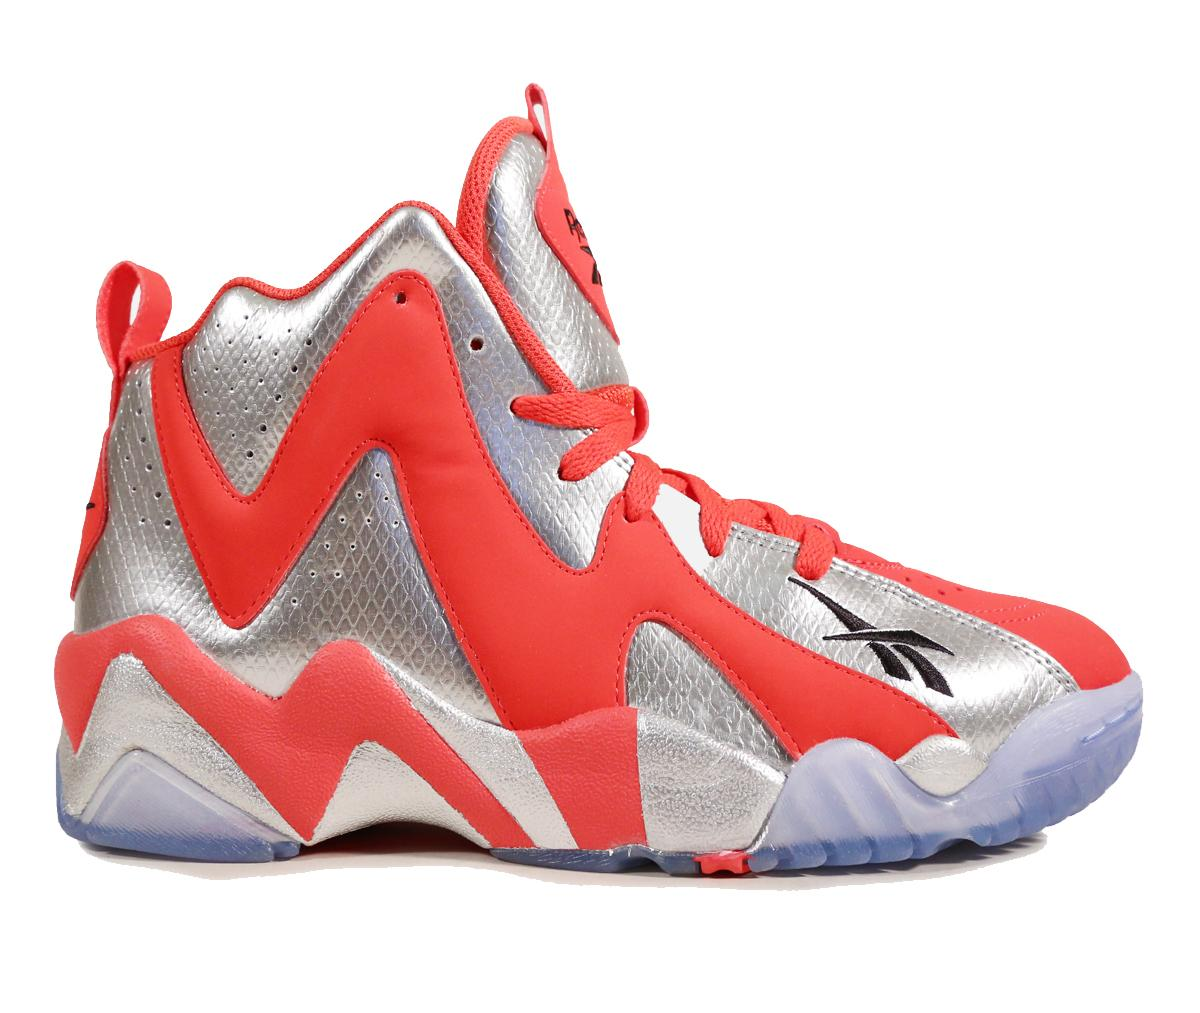 690a95d2ce38ac Lyst - Reebok Kamikaze Ii Fish Market in Red for Men